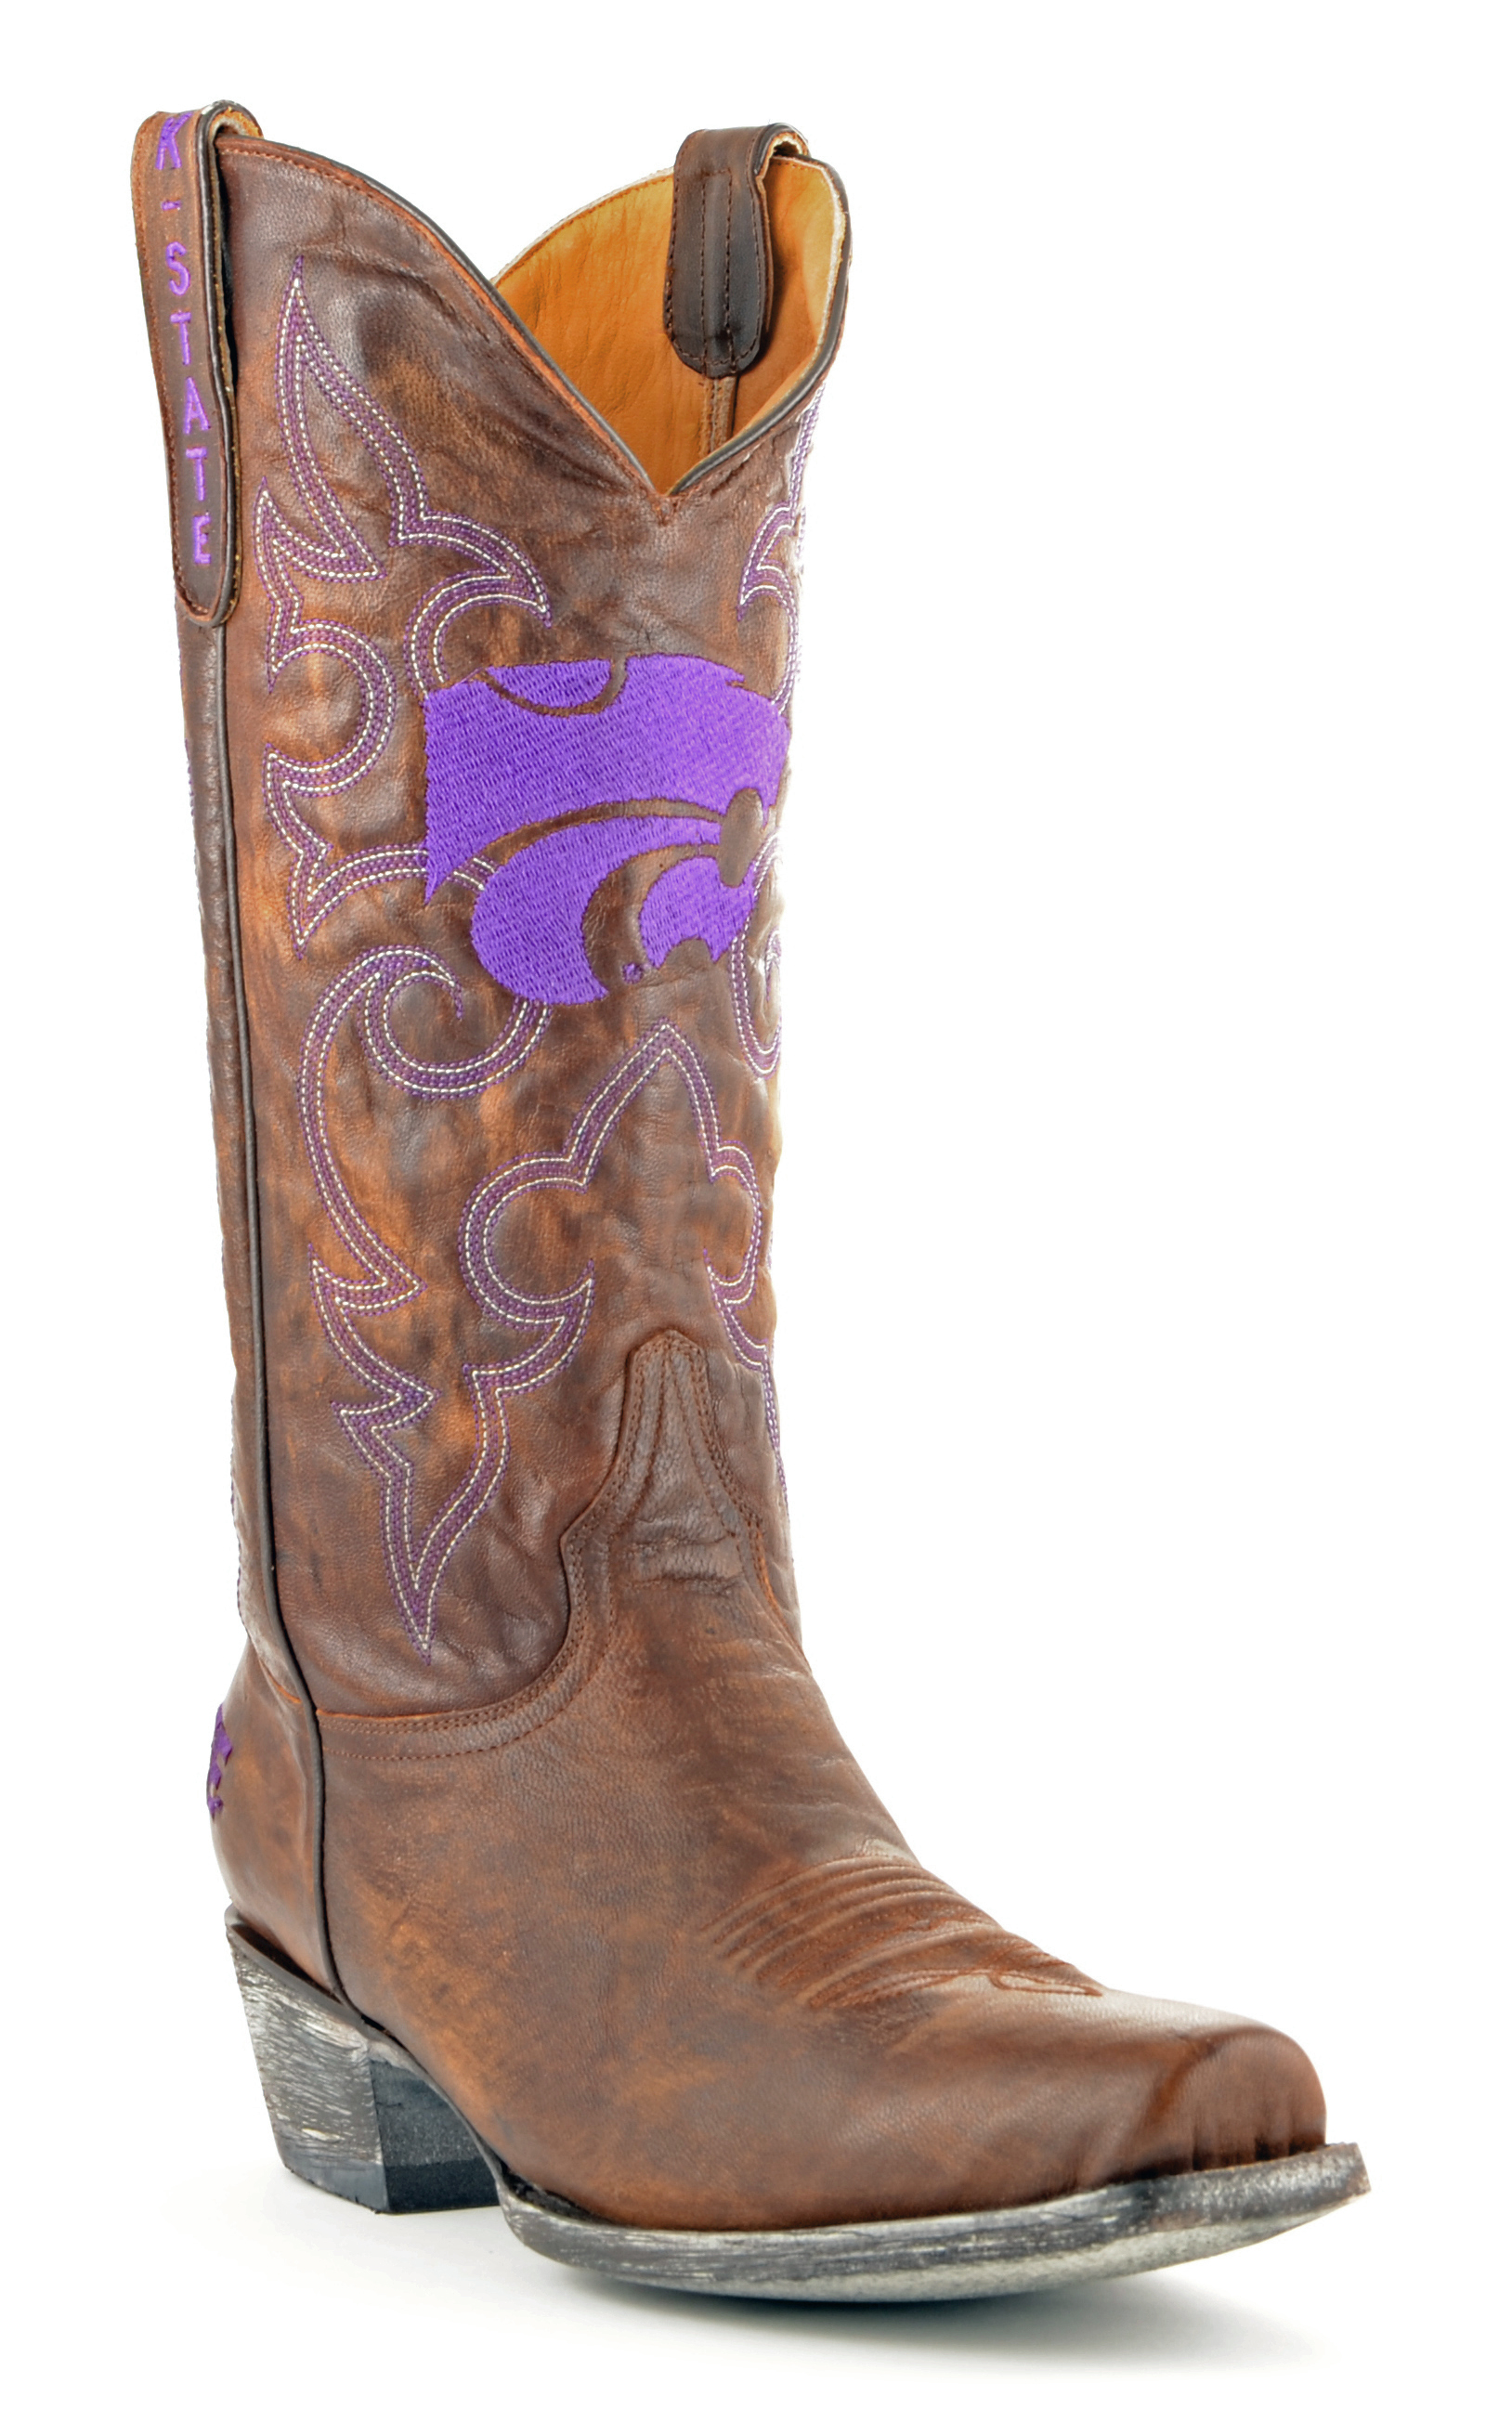 "Men's Tan Kansas State Wildcats 13"" Boardroom Embroidered Boots by GameDay Boots"